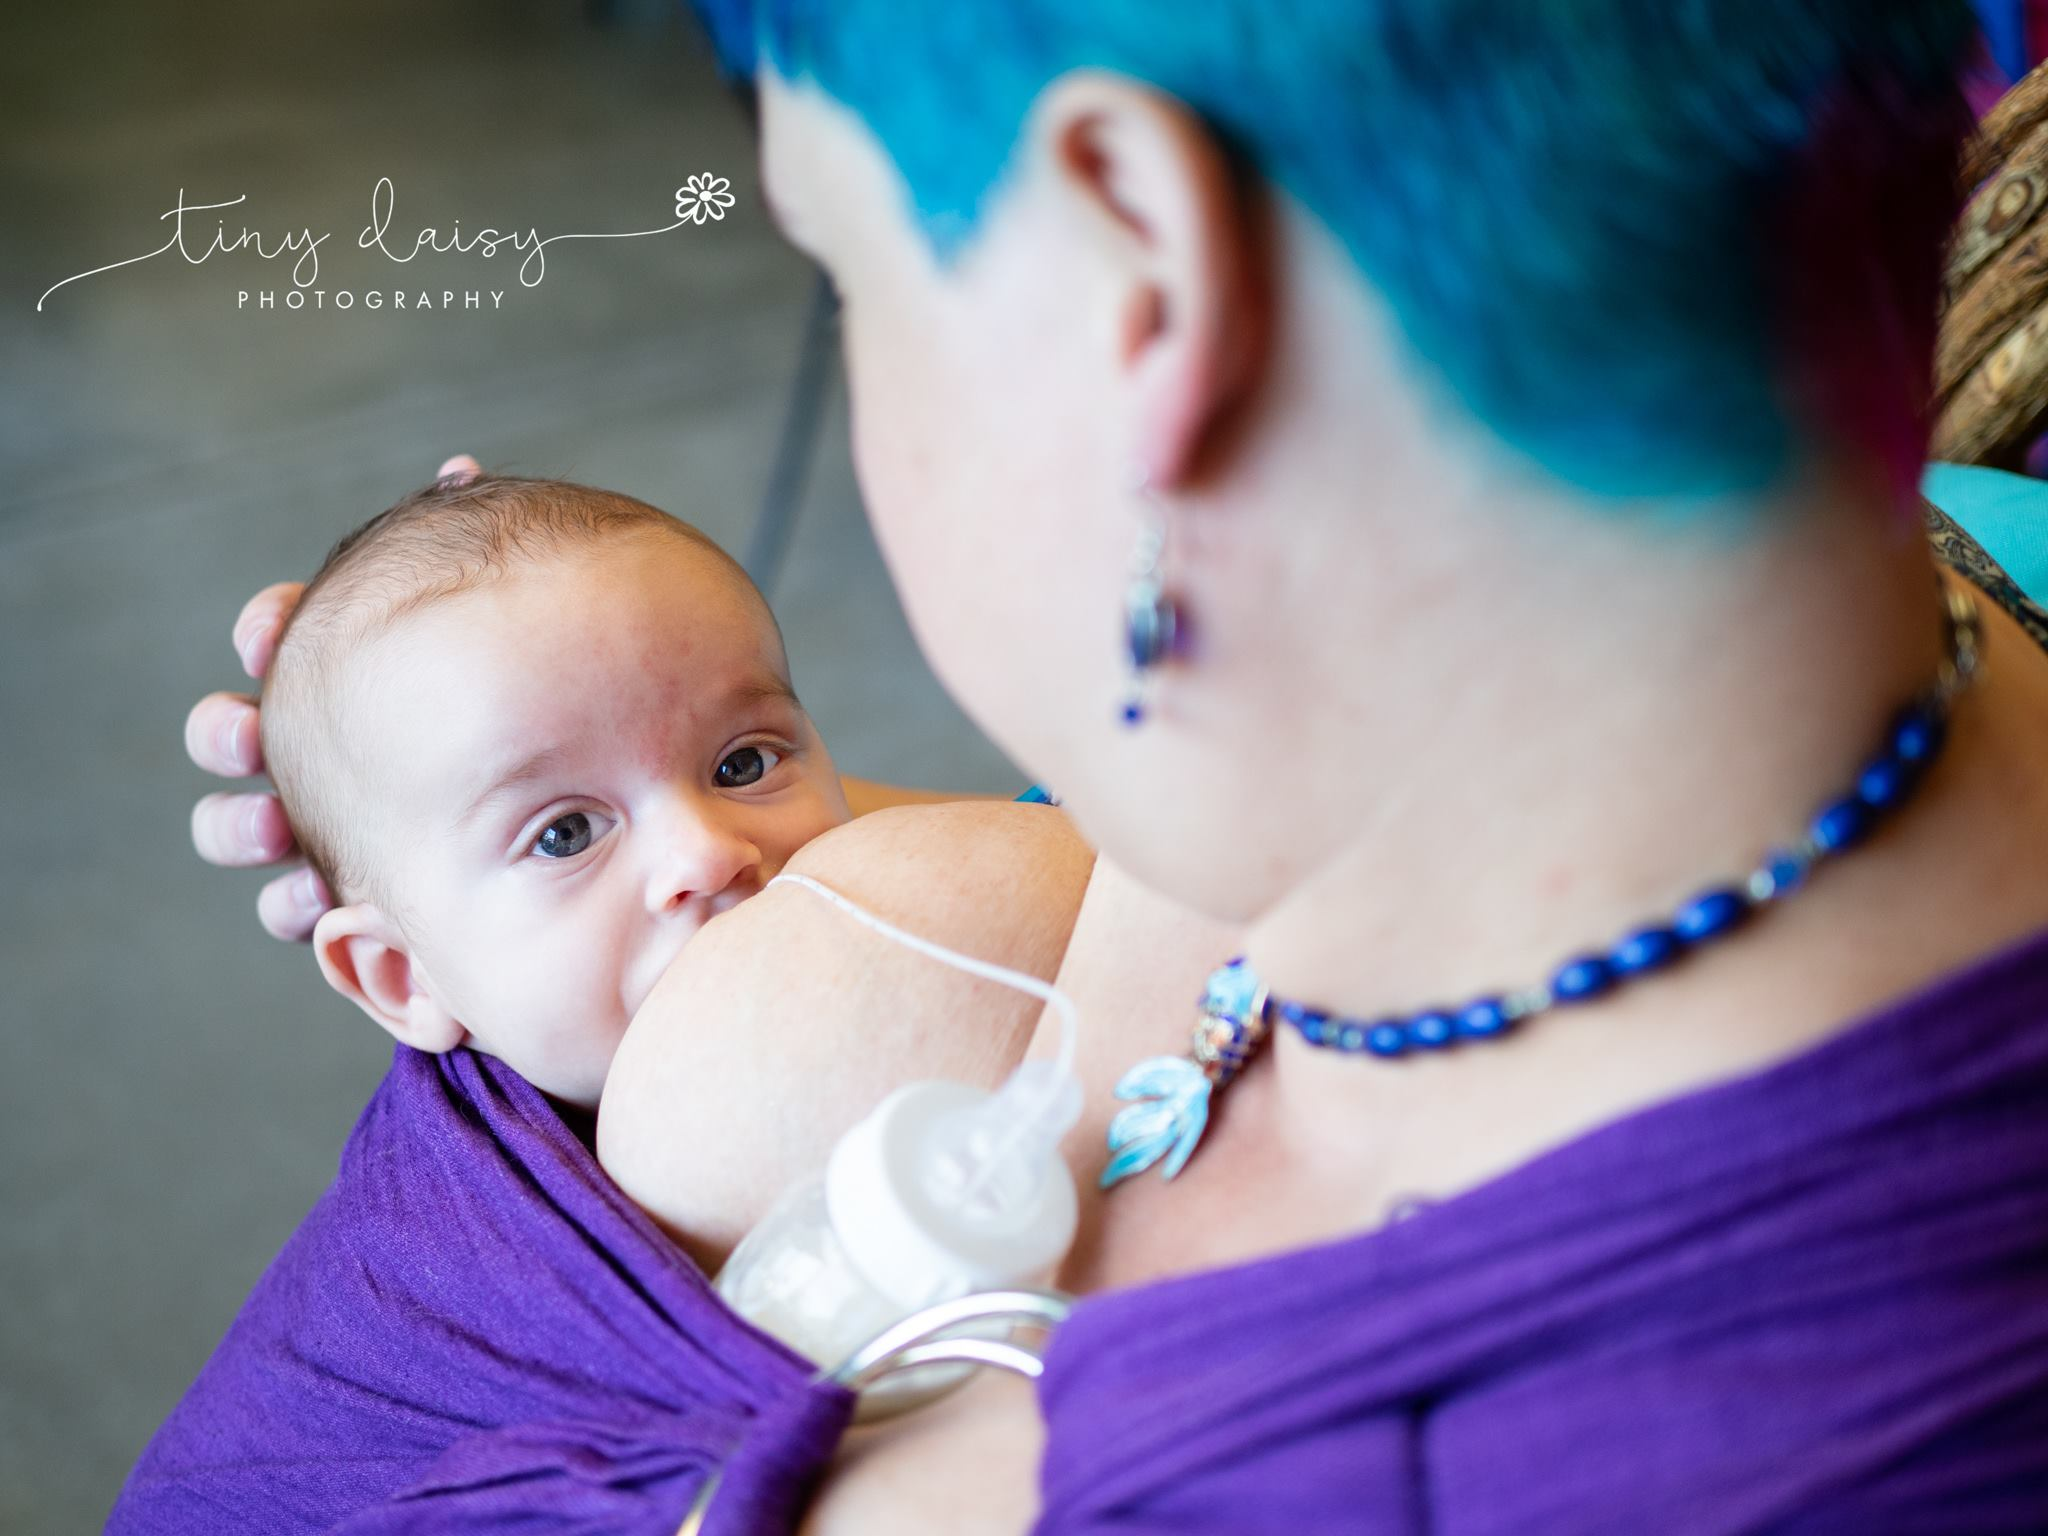 A caregiver with blue hair is tube feeding her child in a purple ring sling.